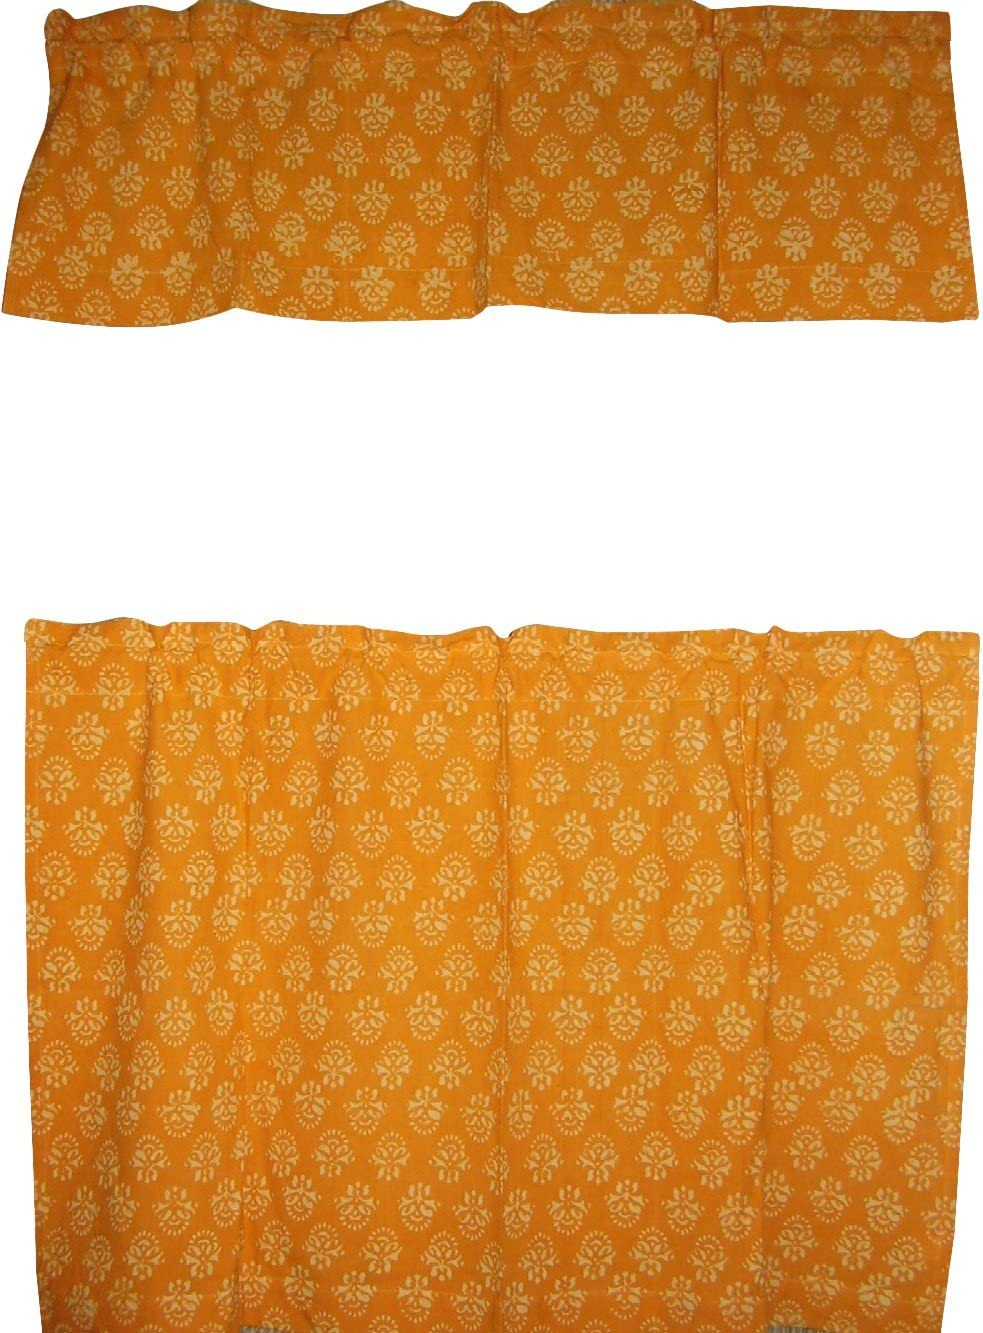 Full Moon Loom Cafe Curtain with Valance Block Print Cotton 44 x 30 Saffron